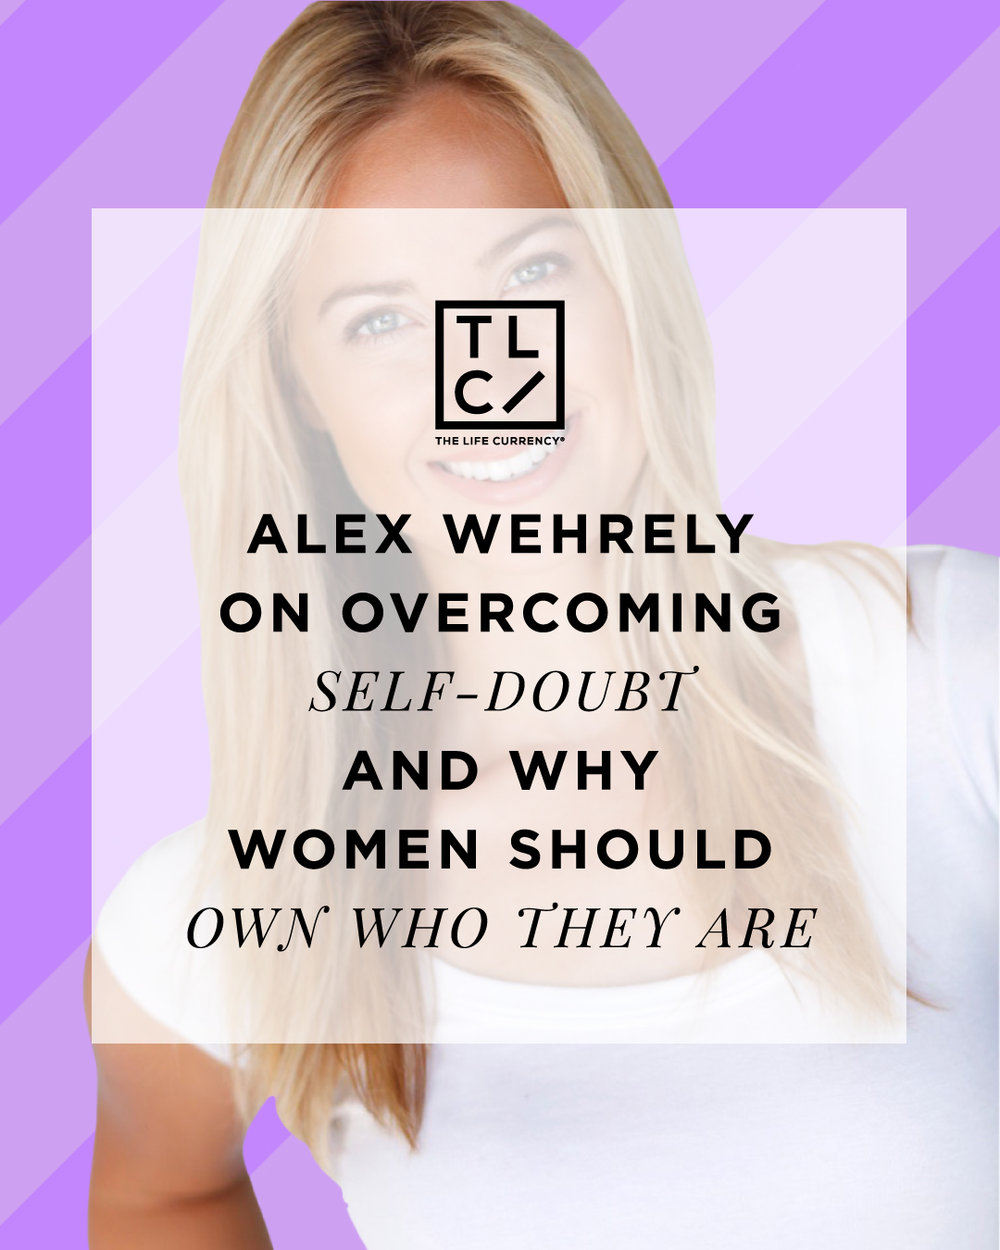 Alex Wehrley on overcoming self-doubt and why women should own who they are